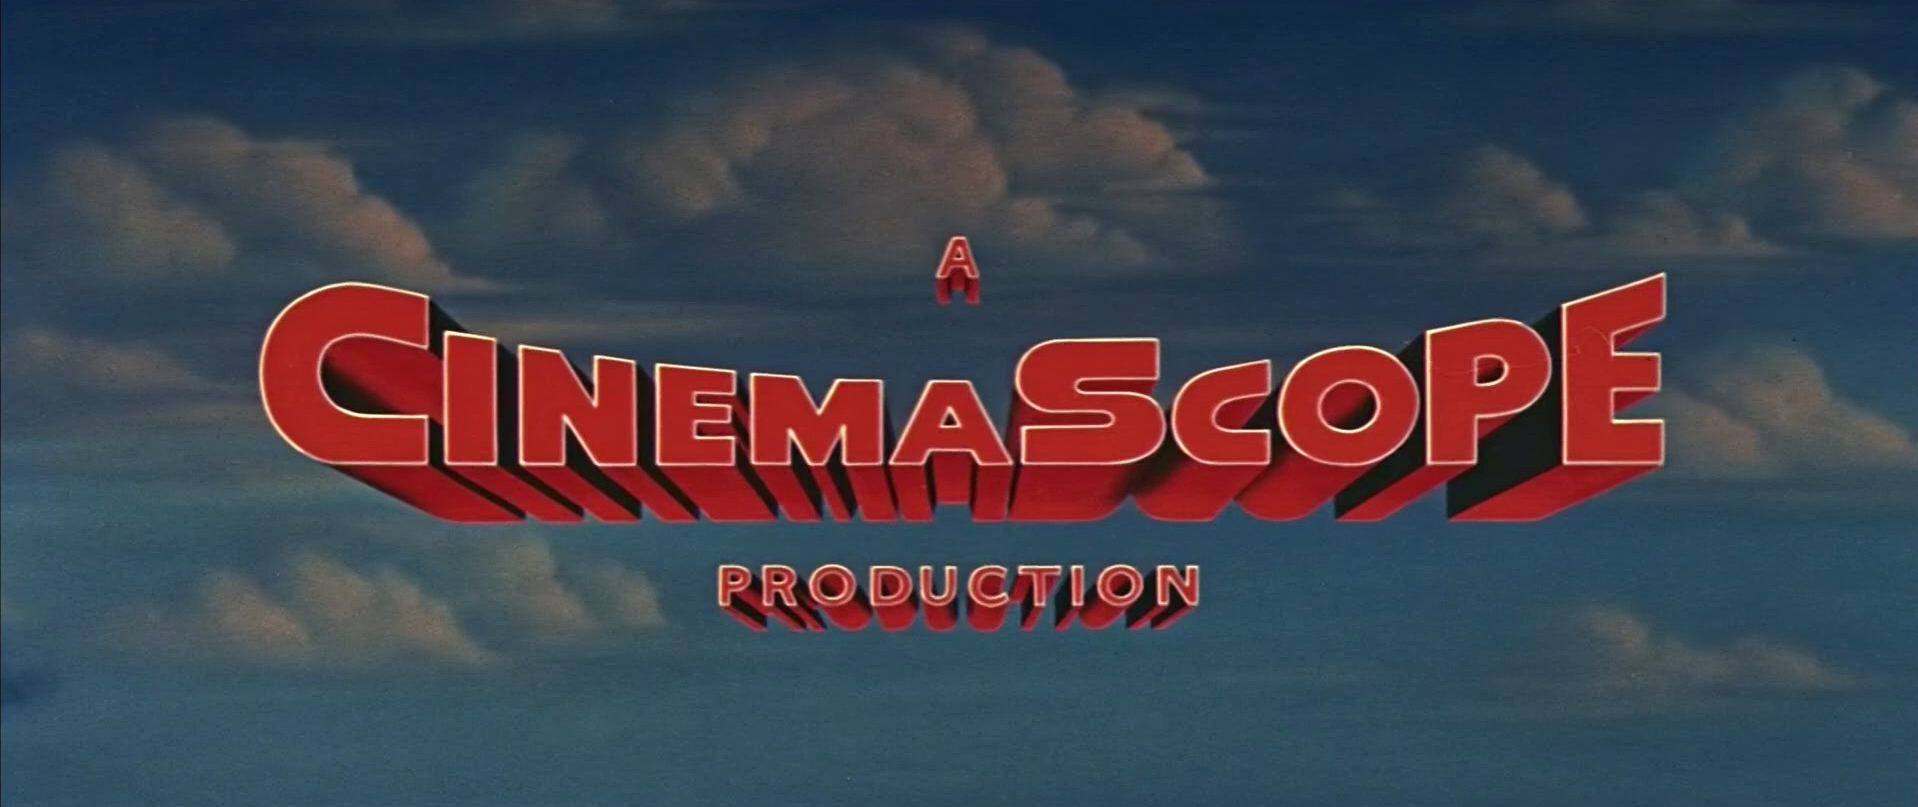 Main title from The Black Shield of Falworth (1954) (2). A CinemaScope production